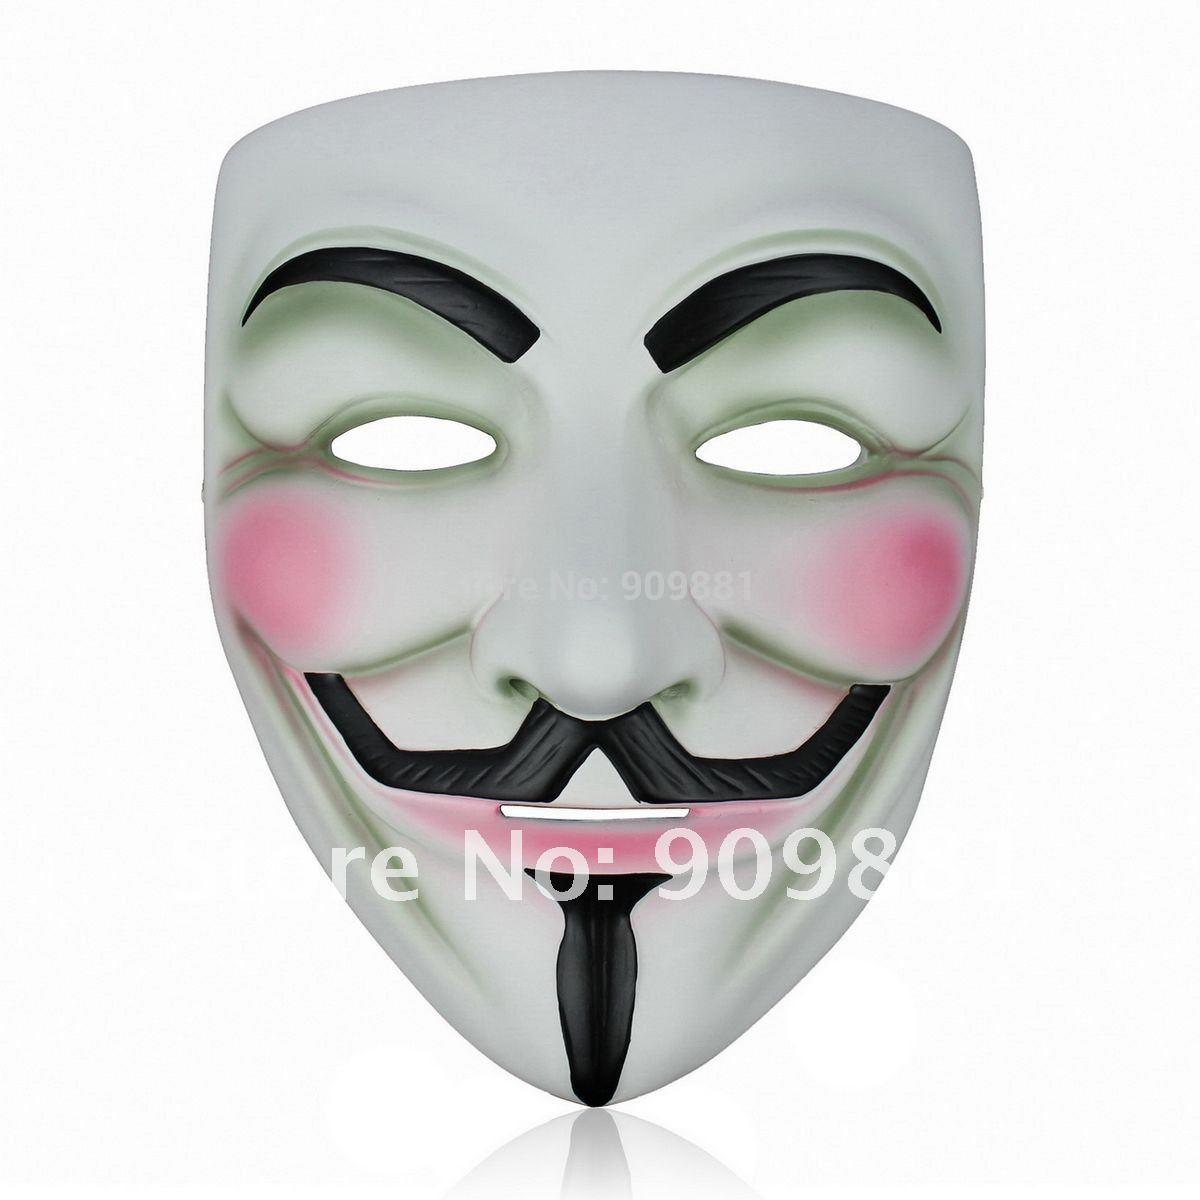 Brand New Resin V Mask Vendetta Halloween Party Face Mask Super ...